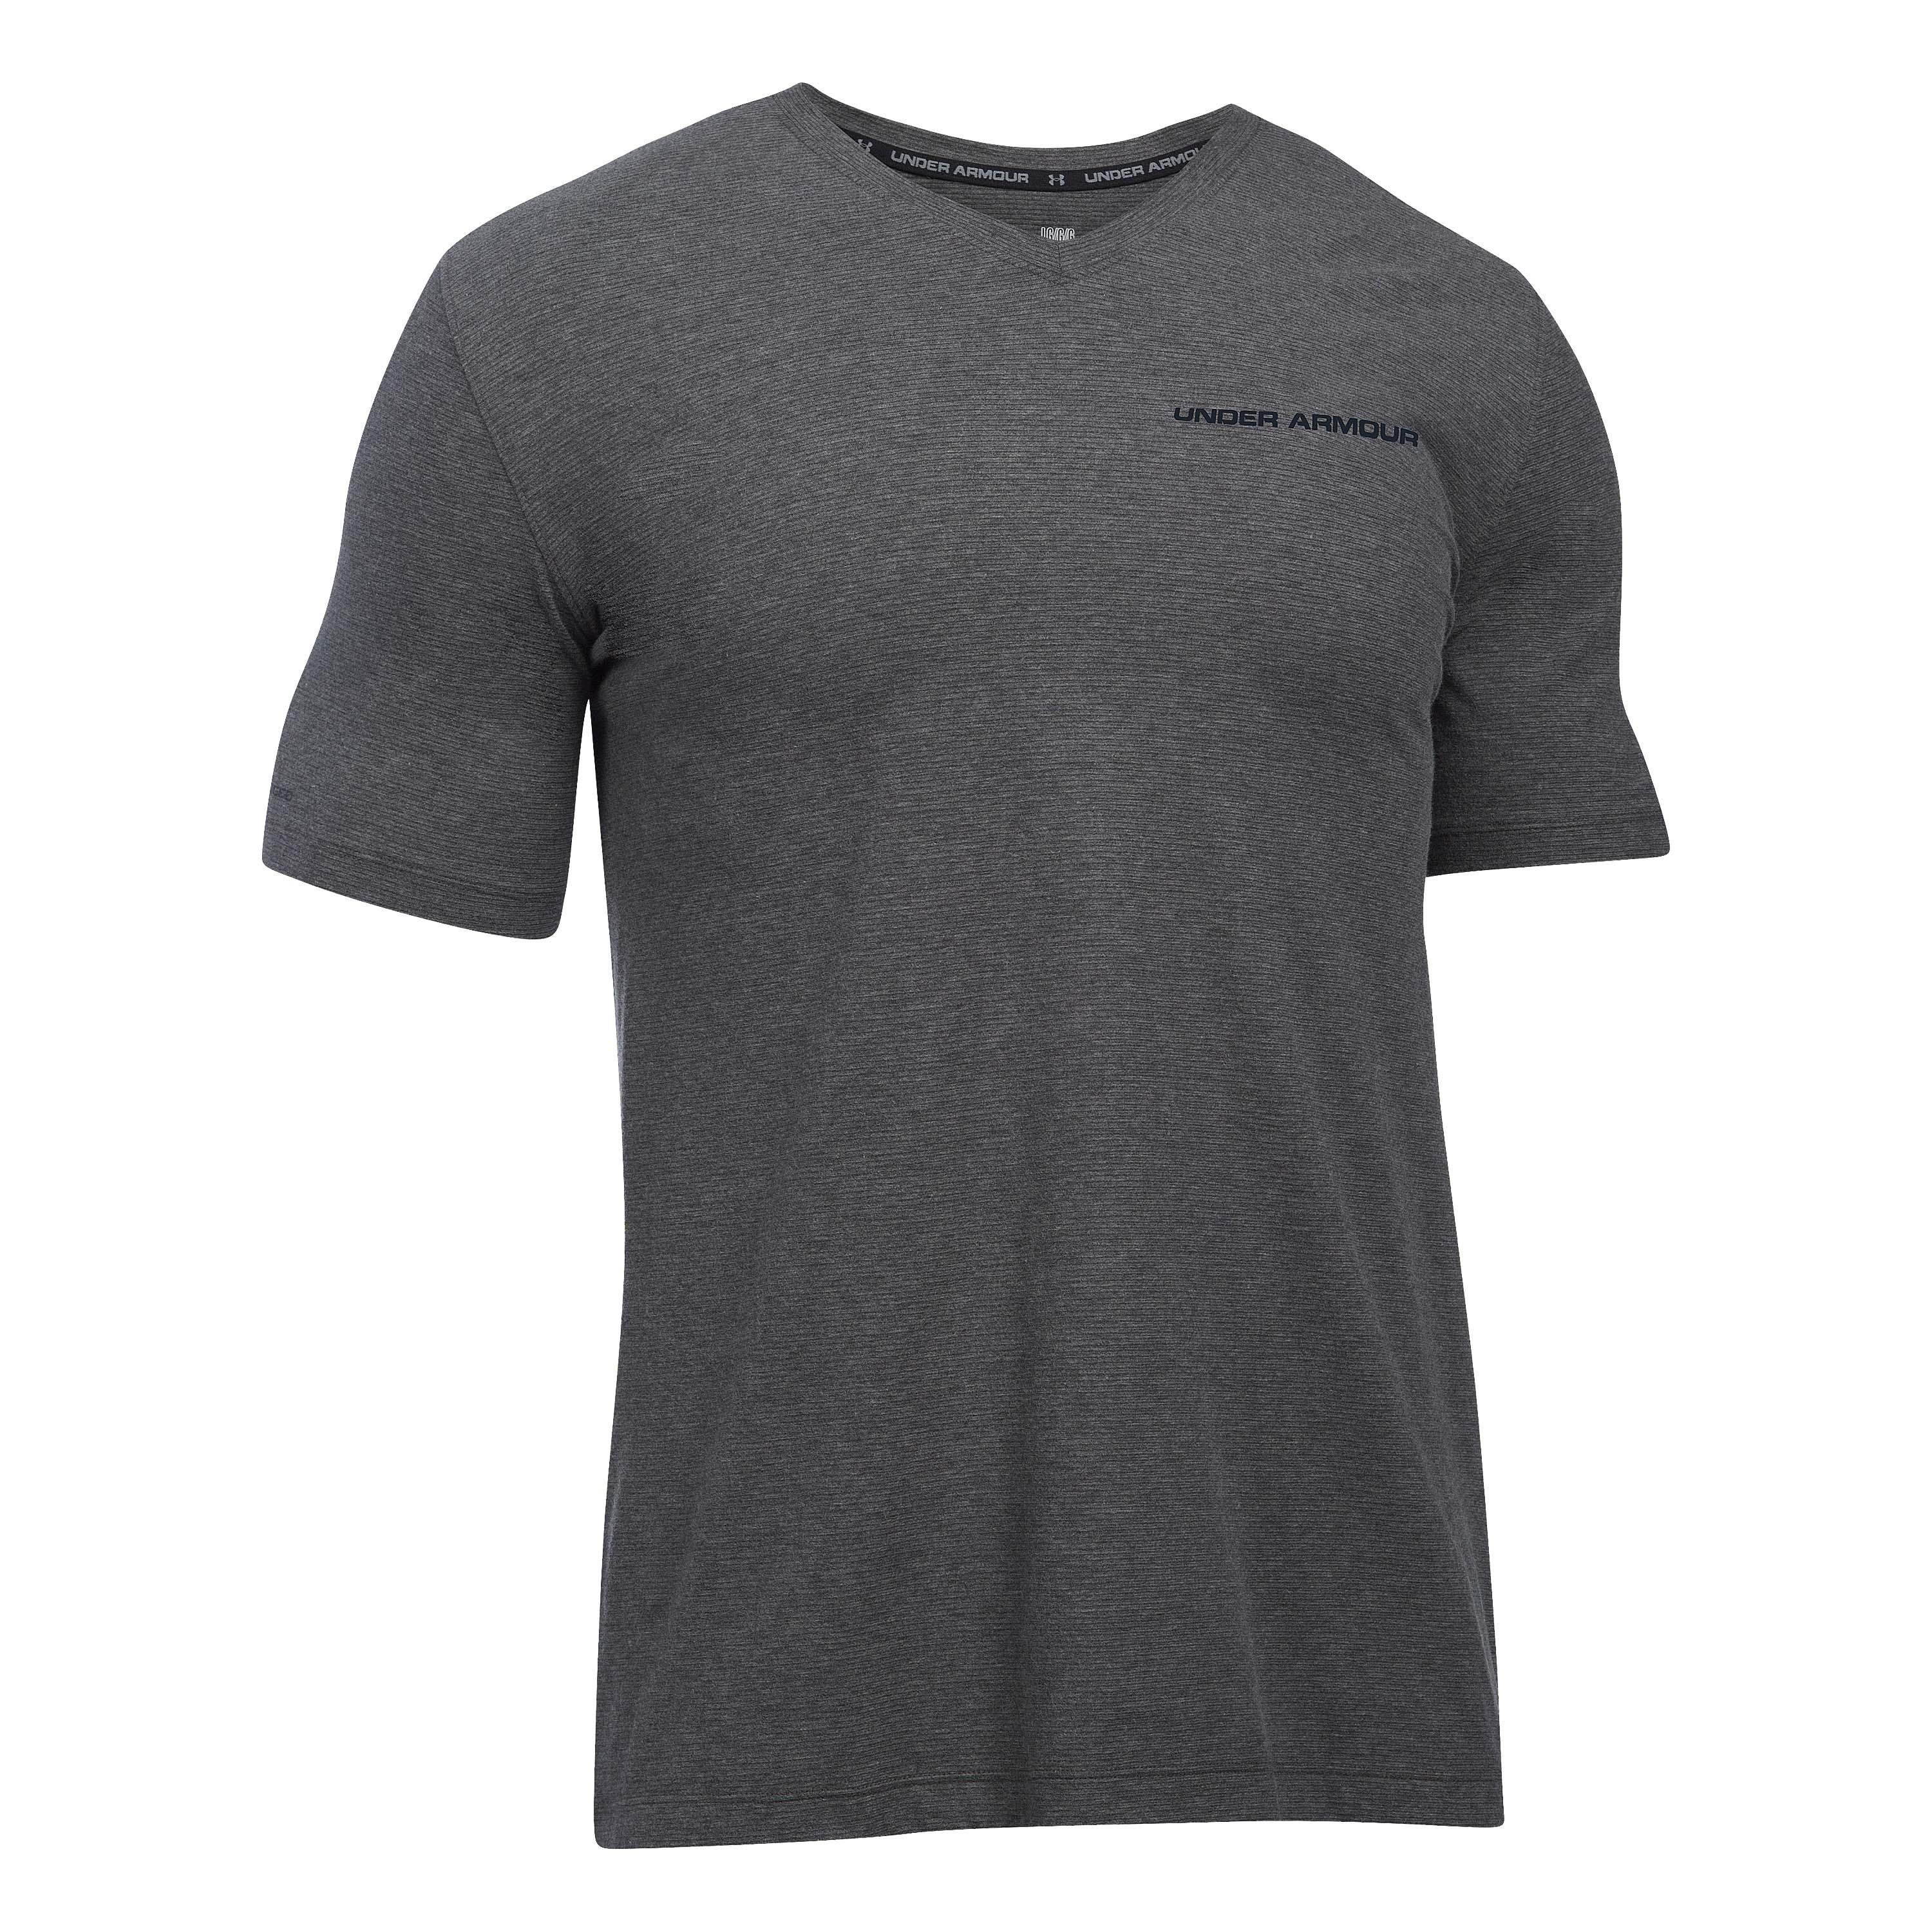 Under Armour T-Shirt V-Neck Charged Cotton anthrazit